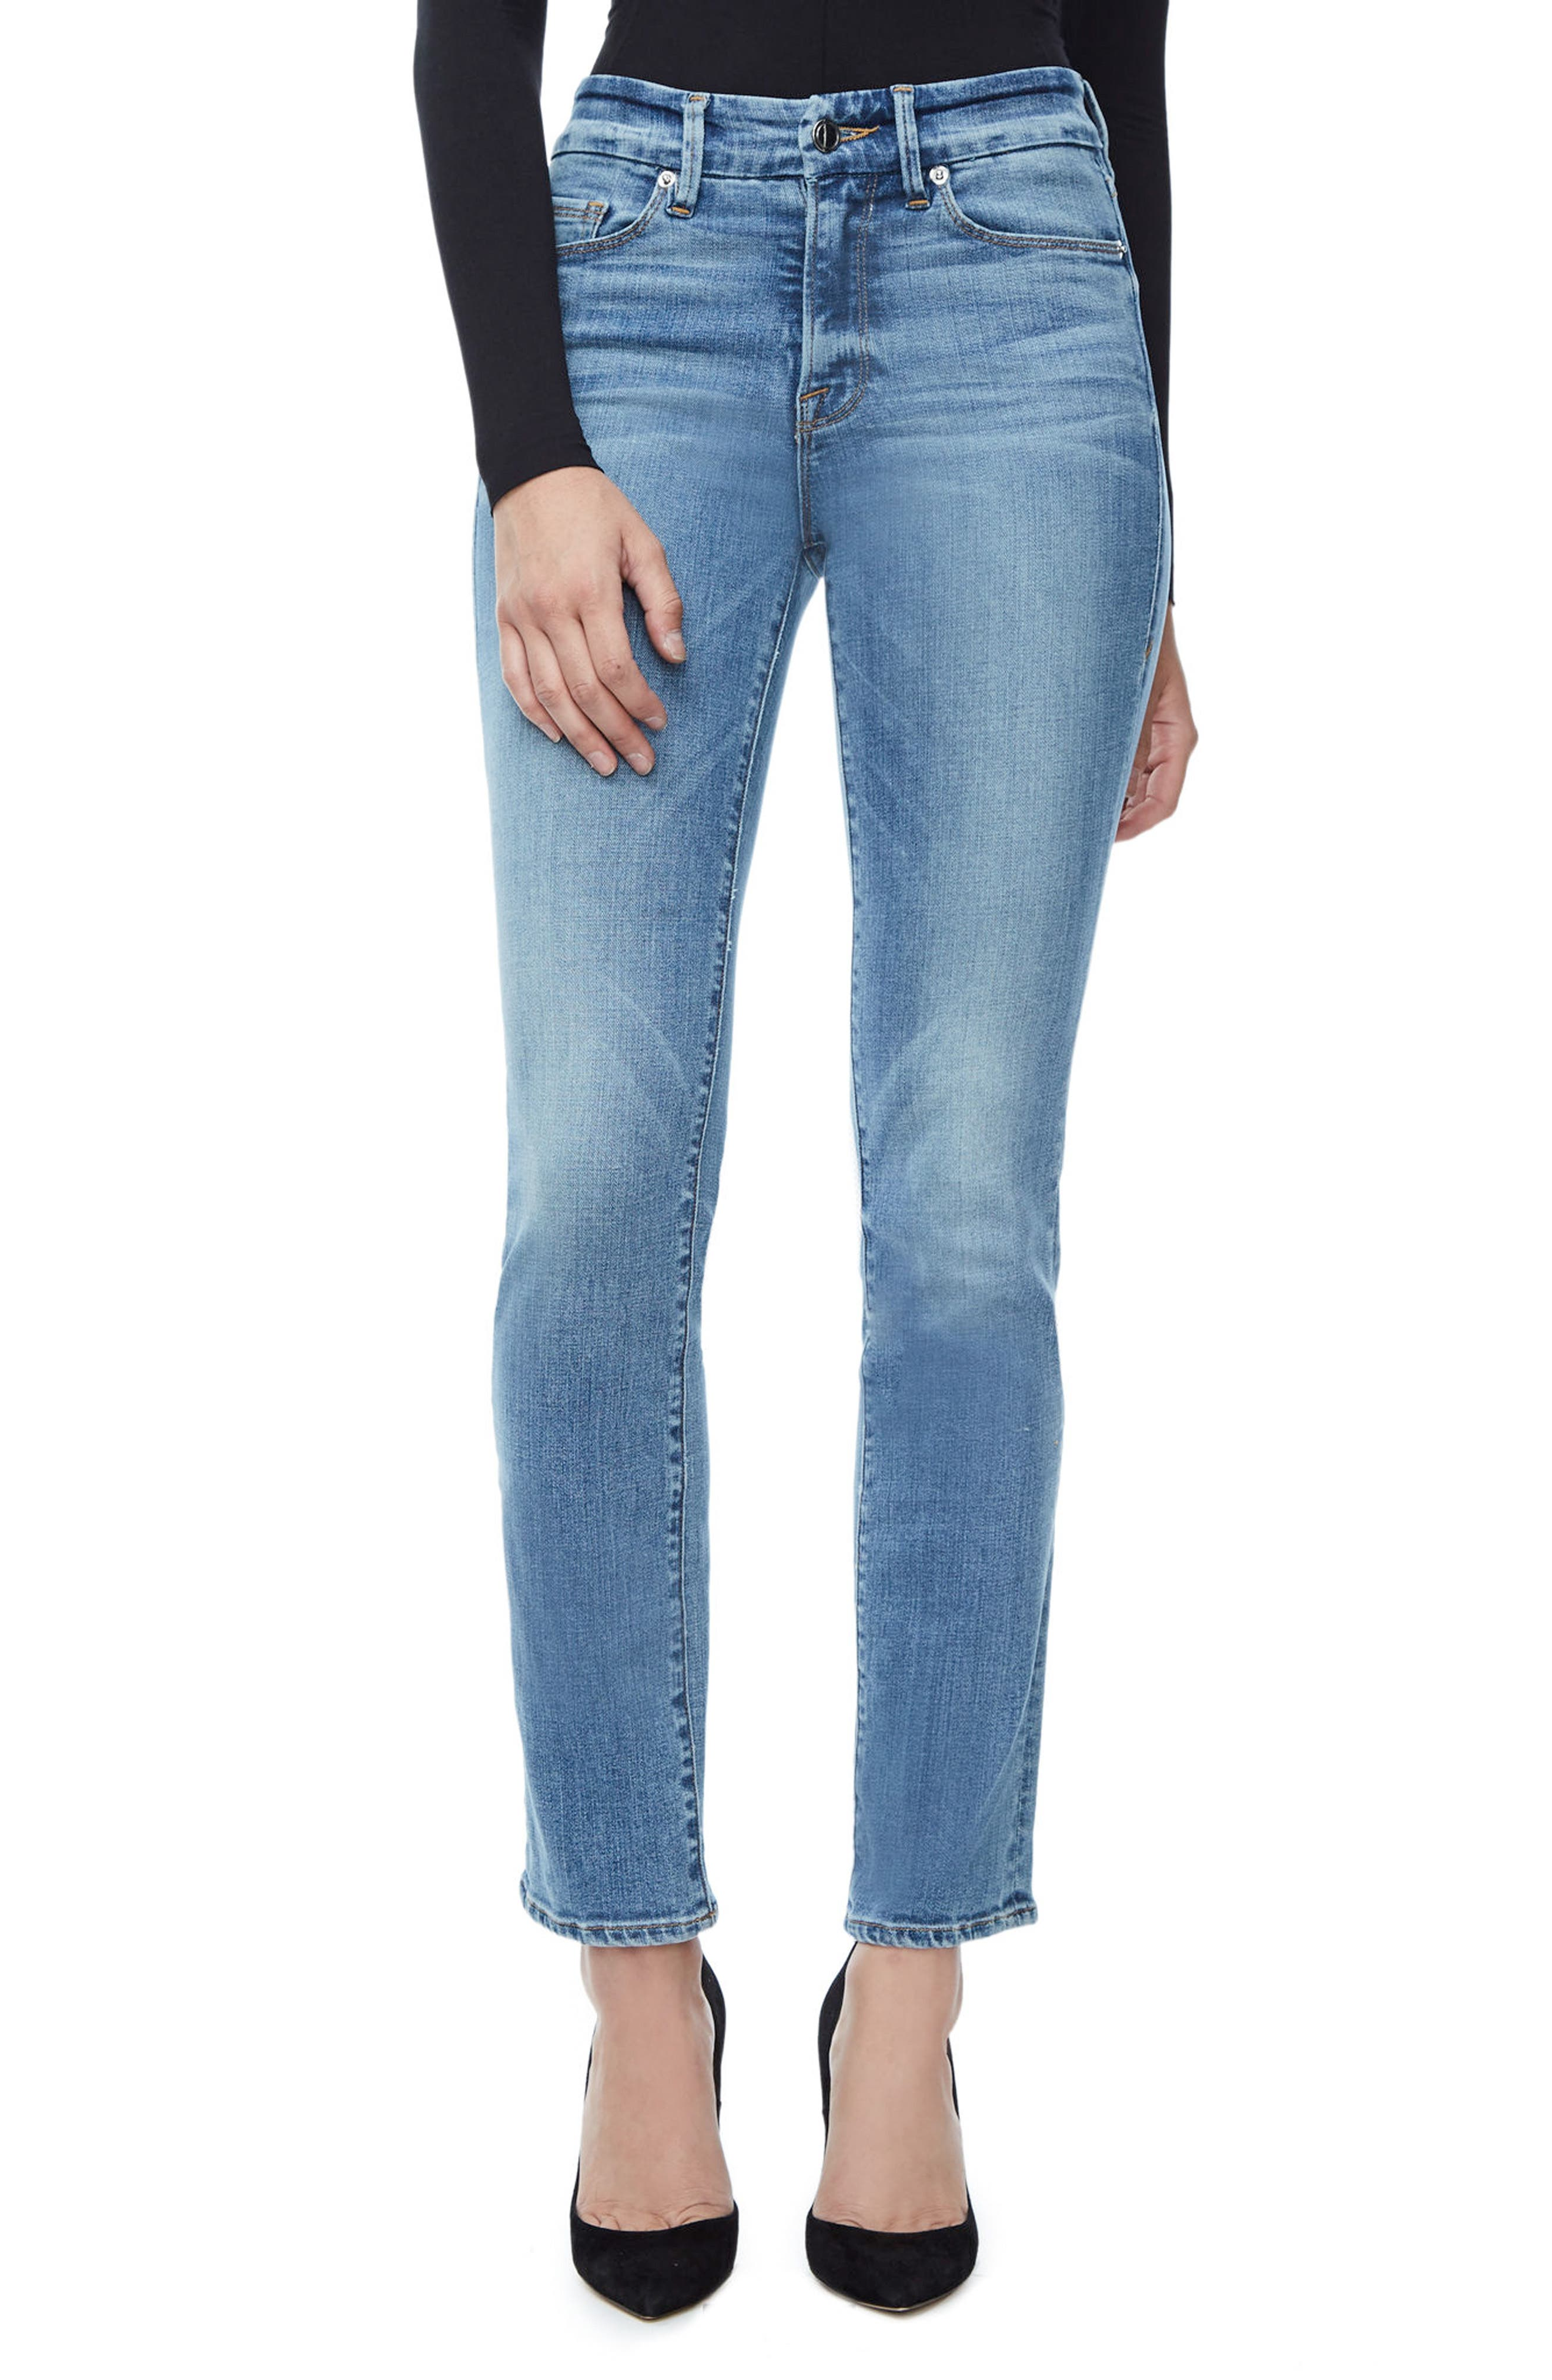 Alternate Image 1 Selected - Good American Good Straight High Rise Jeans (Blue 087) (Extended Sizes)